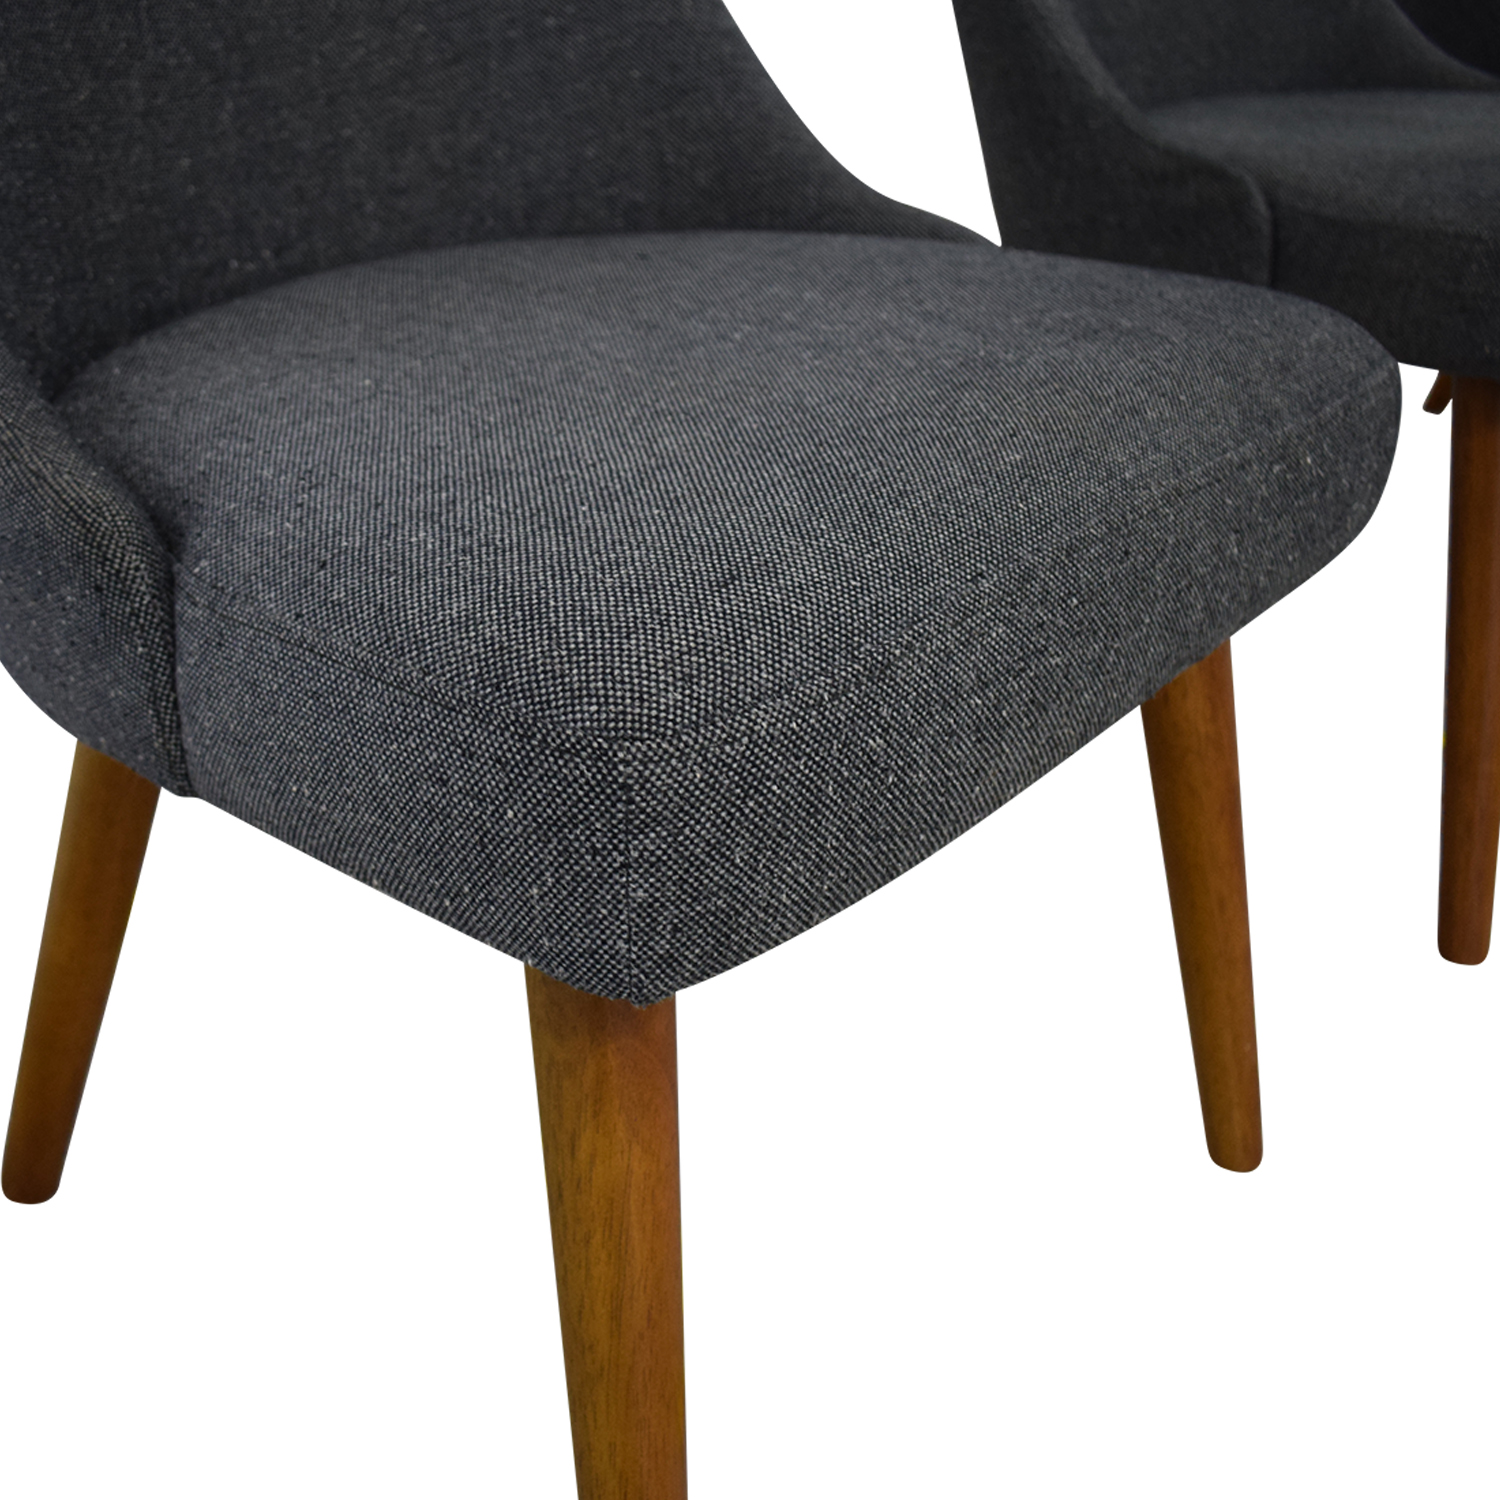 West Elm West Elm Mid-Century Upholstered Dining Chairs dimensions